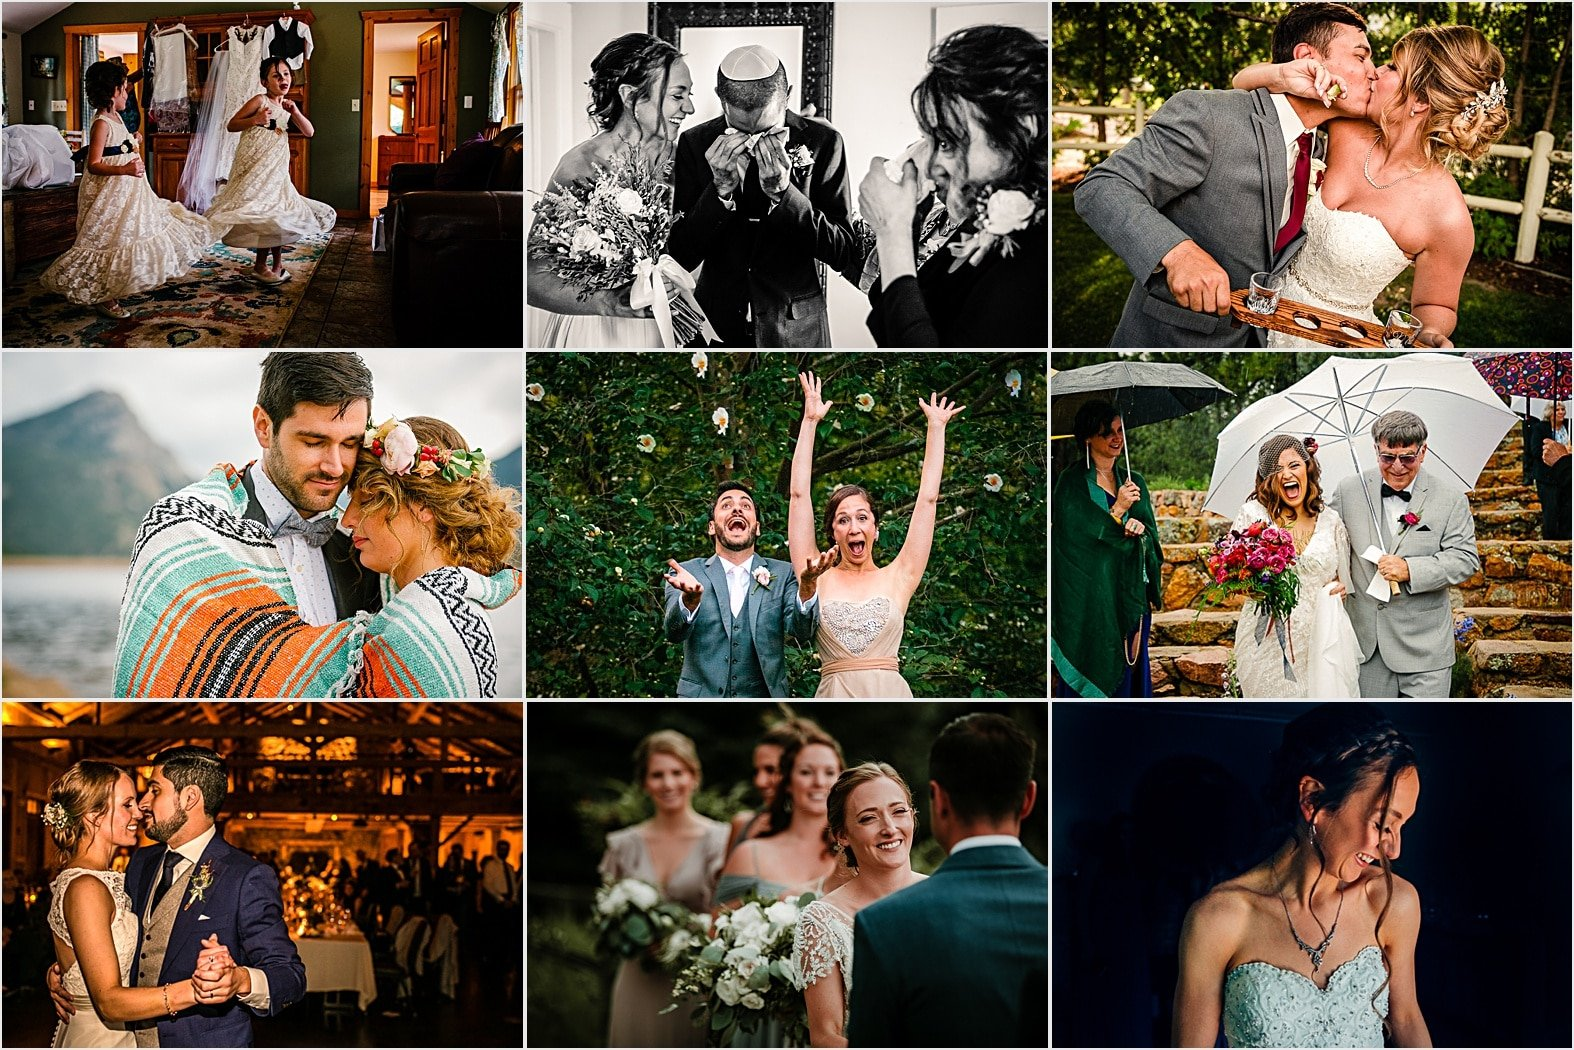 Wedding Day Tips and Tricks for Amazing Wedding Photos!